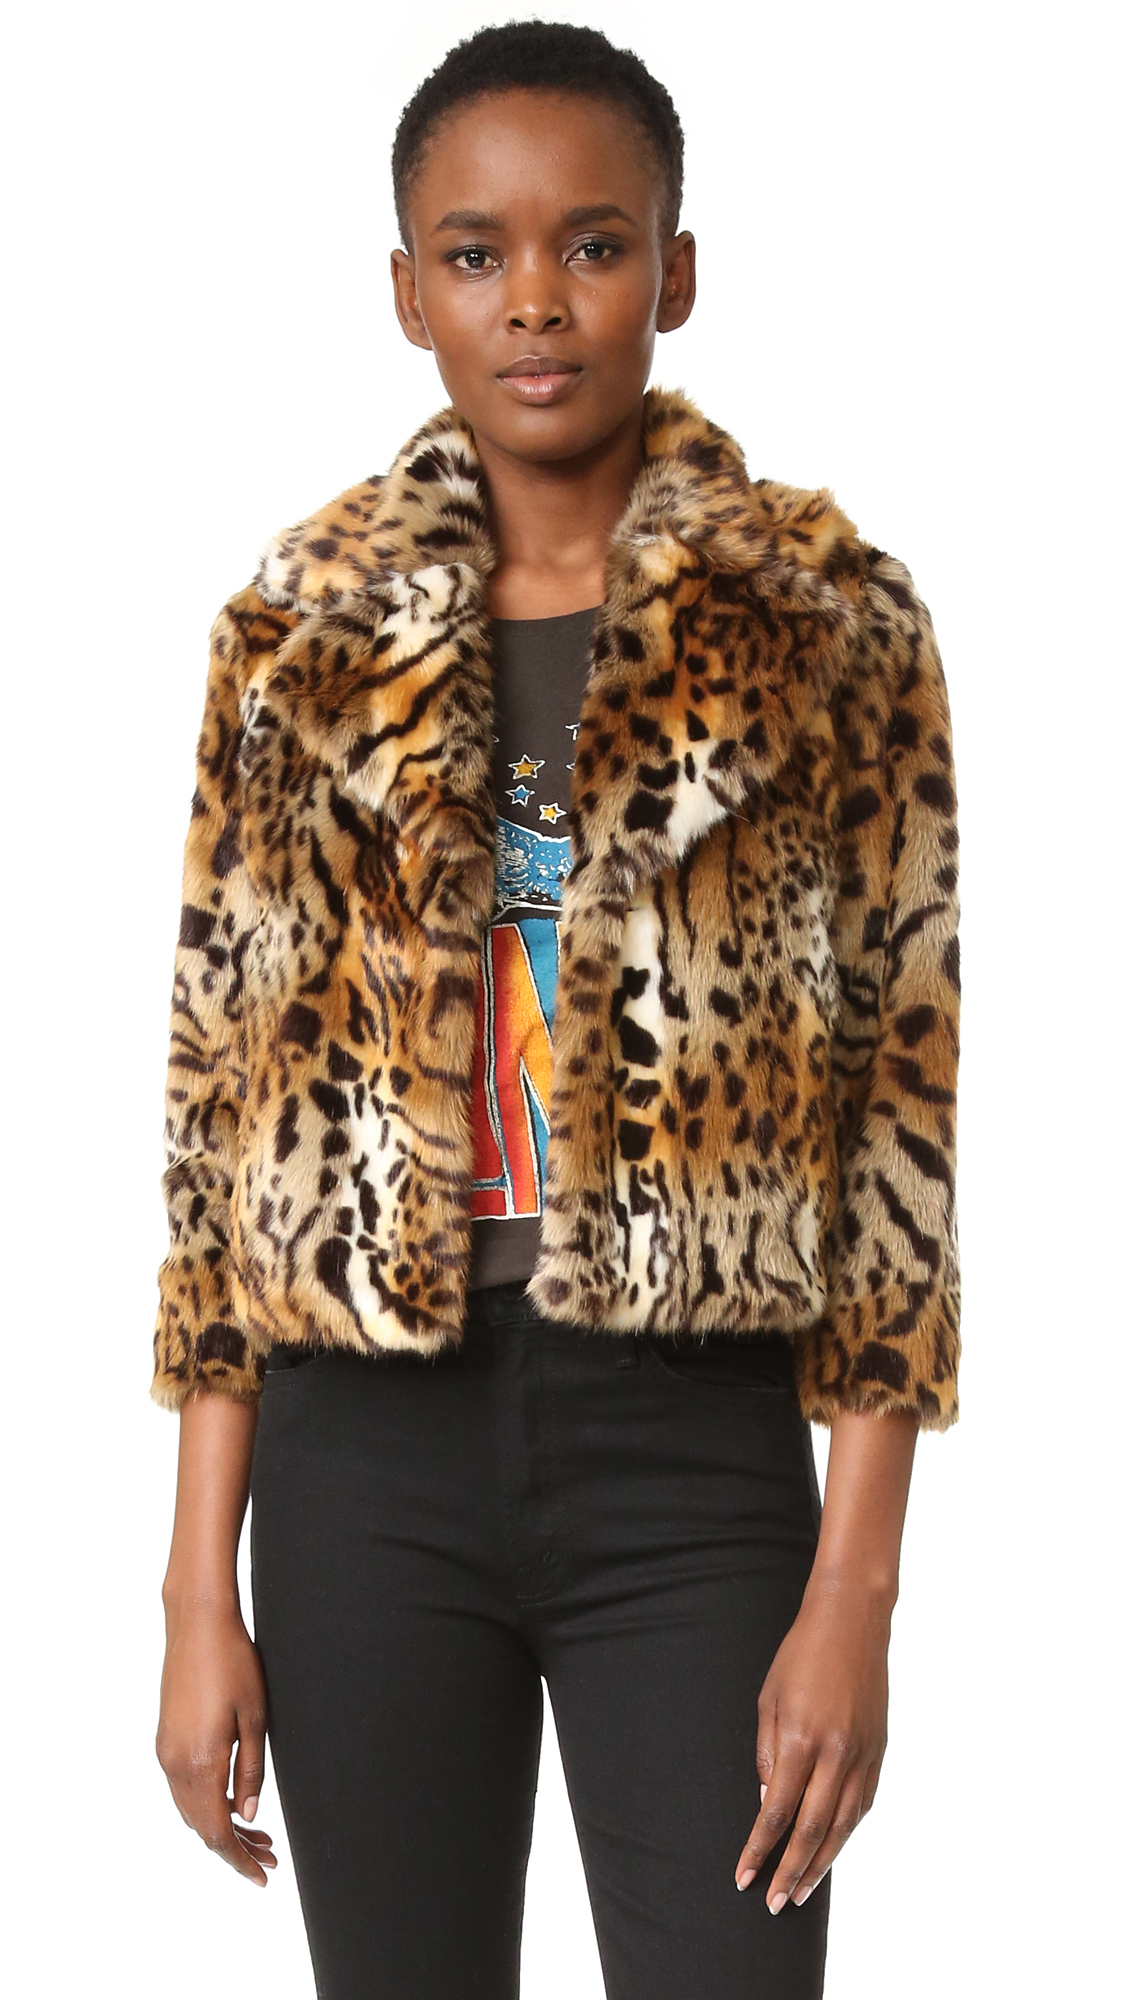 This cropped MOTHER jacket makes a daring statement in leopard print faux fur. Notched collar and hook and eye placket. 3/4 sleeves. Star print lining. Fabric: Faux fur. Shell: 56% acrylic/44% modacrylic. Lining: 100% polyester. Dry clean. Imported, China.